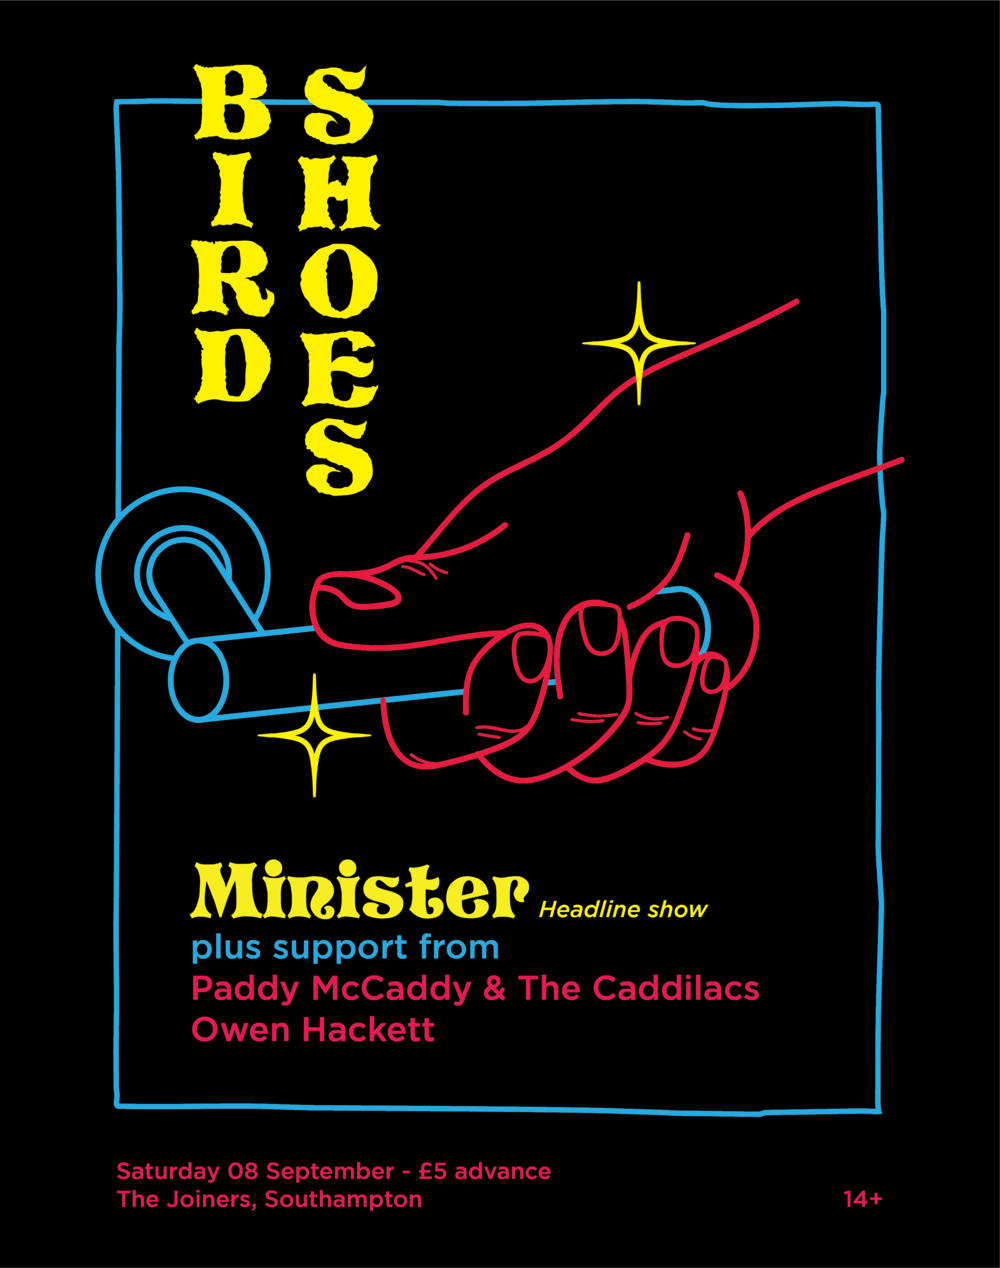 Bird Shoes - Minister headline show.png